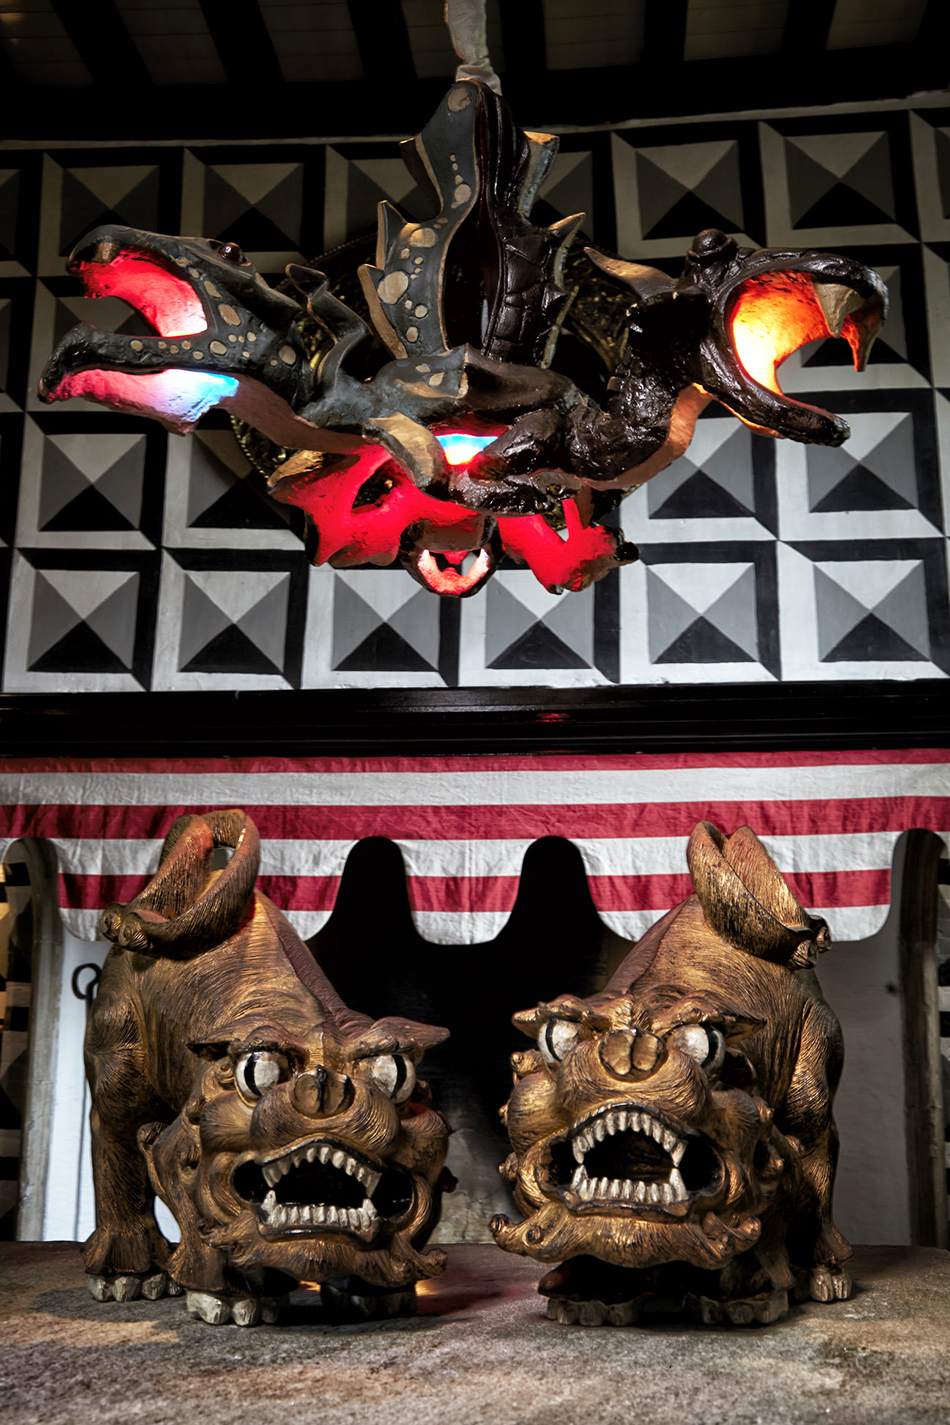 In the entrance hall, a pair of Chinese carved-wood dogs from the 1960s stand guard under a terra-cotta folk-art dragon chandelier from around 1950.